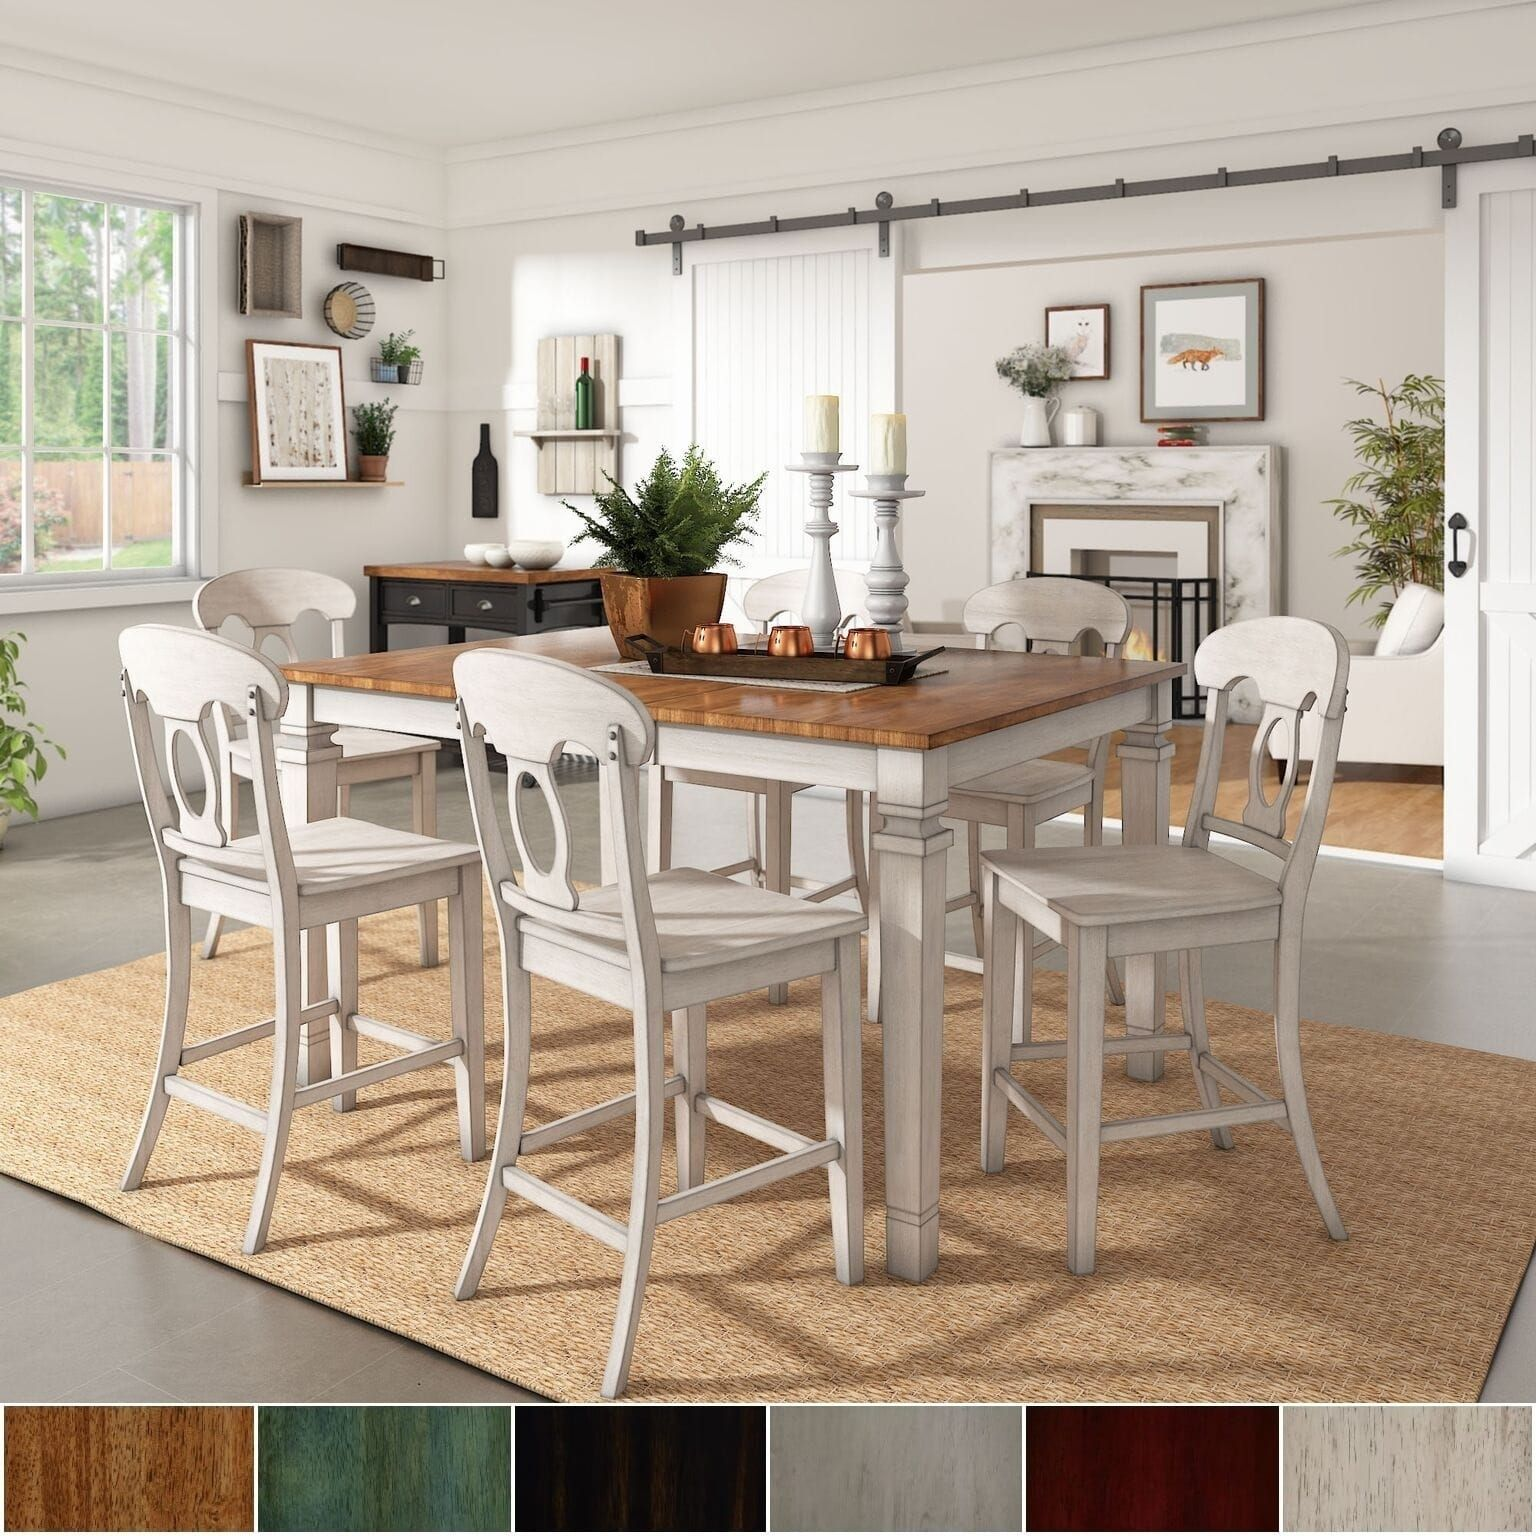 Barmöbel Set Elena Antique White Extendable Counter Height Dining Set